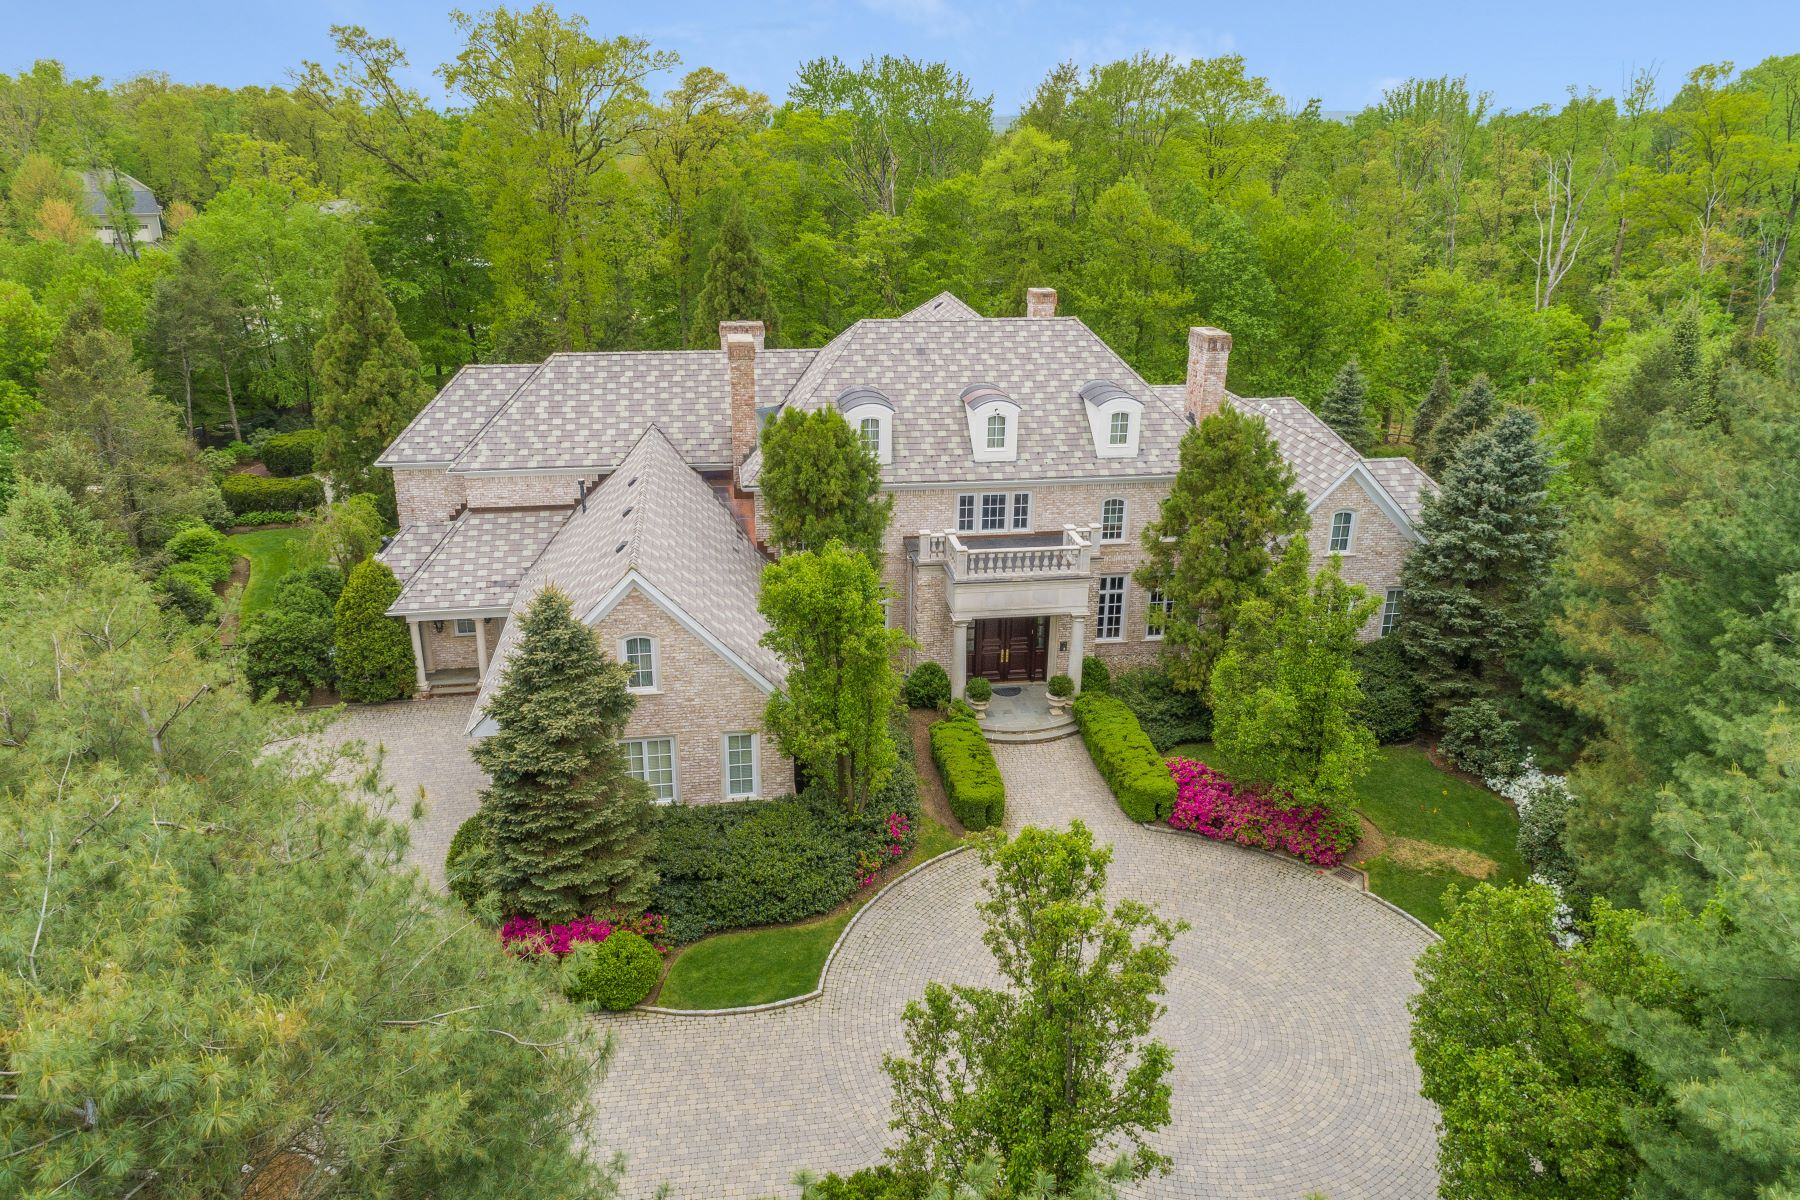 Single Family Homes for Active at Opulent Estate 16 Grasmere Court Livingston, New Jersey 07039 United States